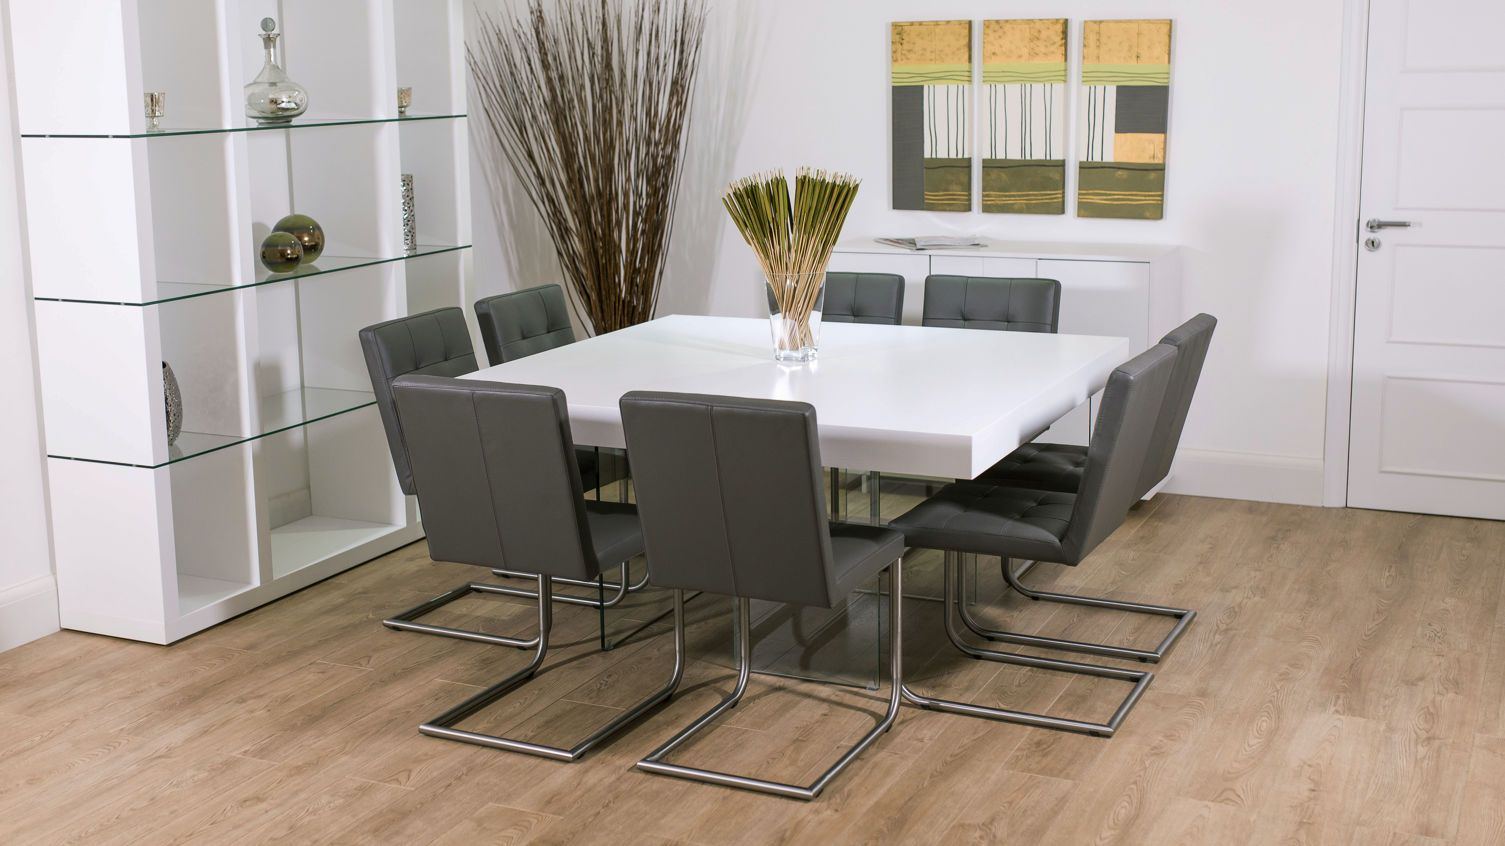 8 Seater Square Glass Dining Table In 2020 Square Dining Room Table Dining Room Contemporary Square Dining Tables